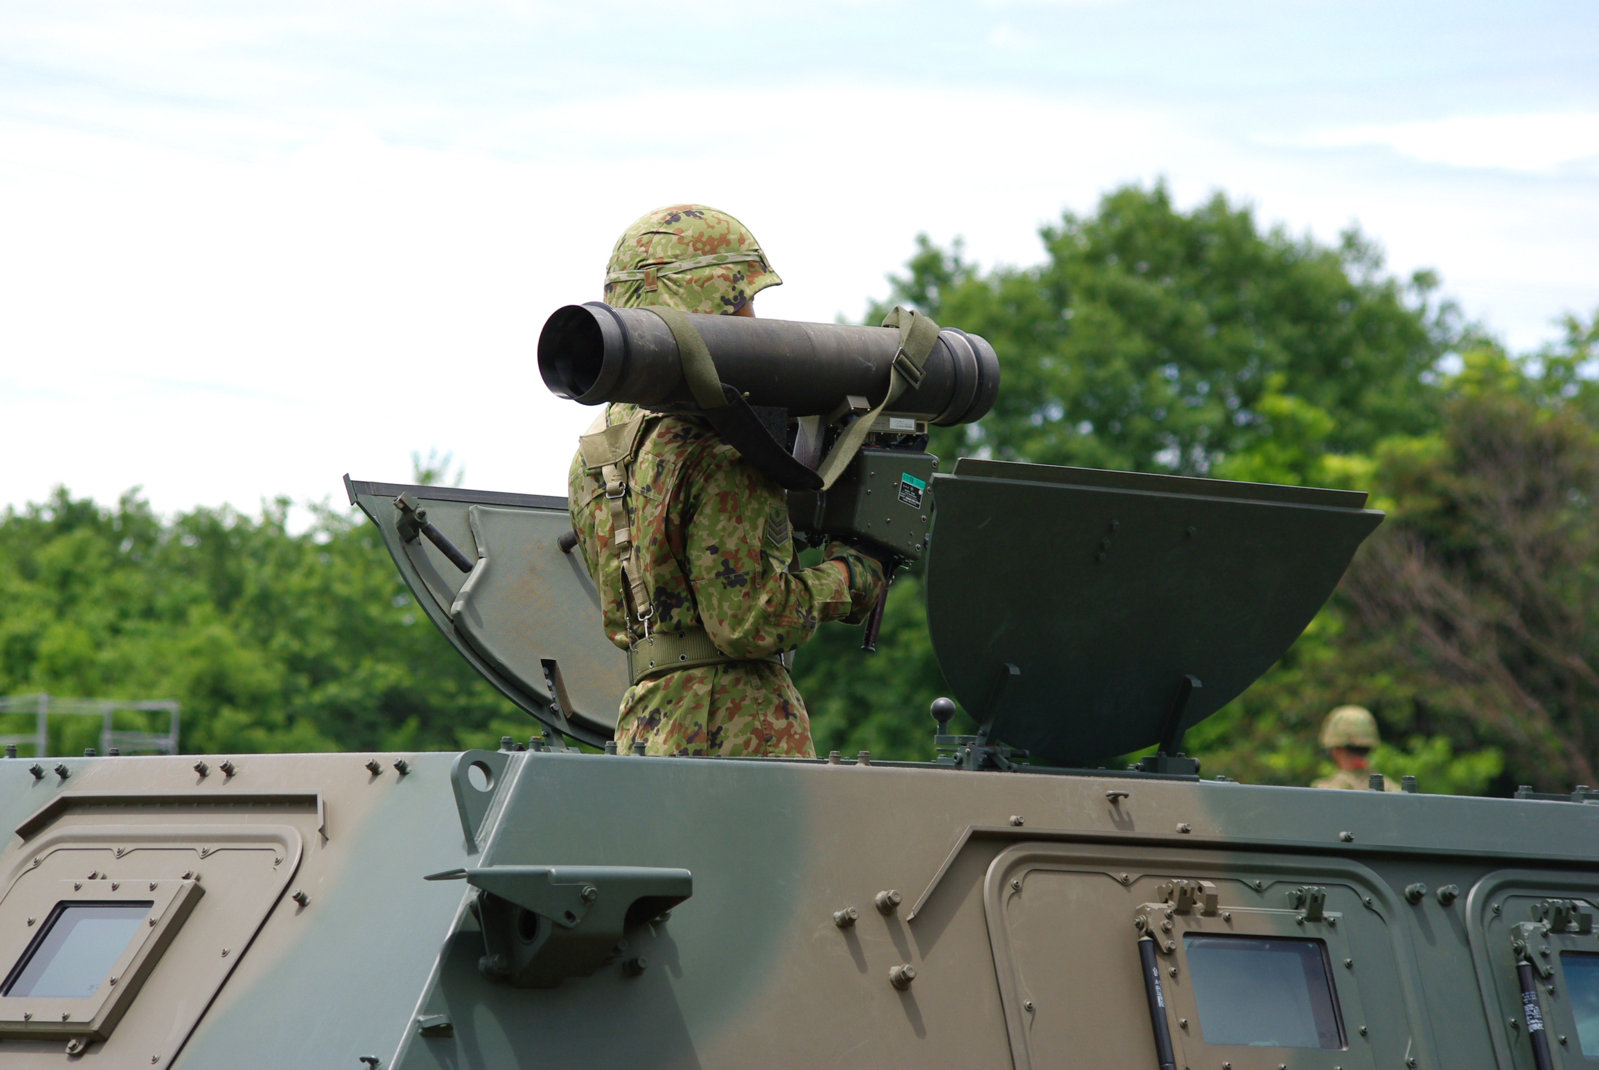 JGSDF_Light_Armored_vehicle_&_Type01_light_anti-tank_missile_20120610-02[1].JPG